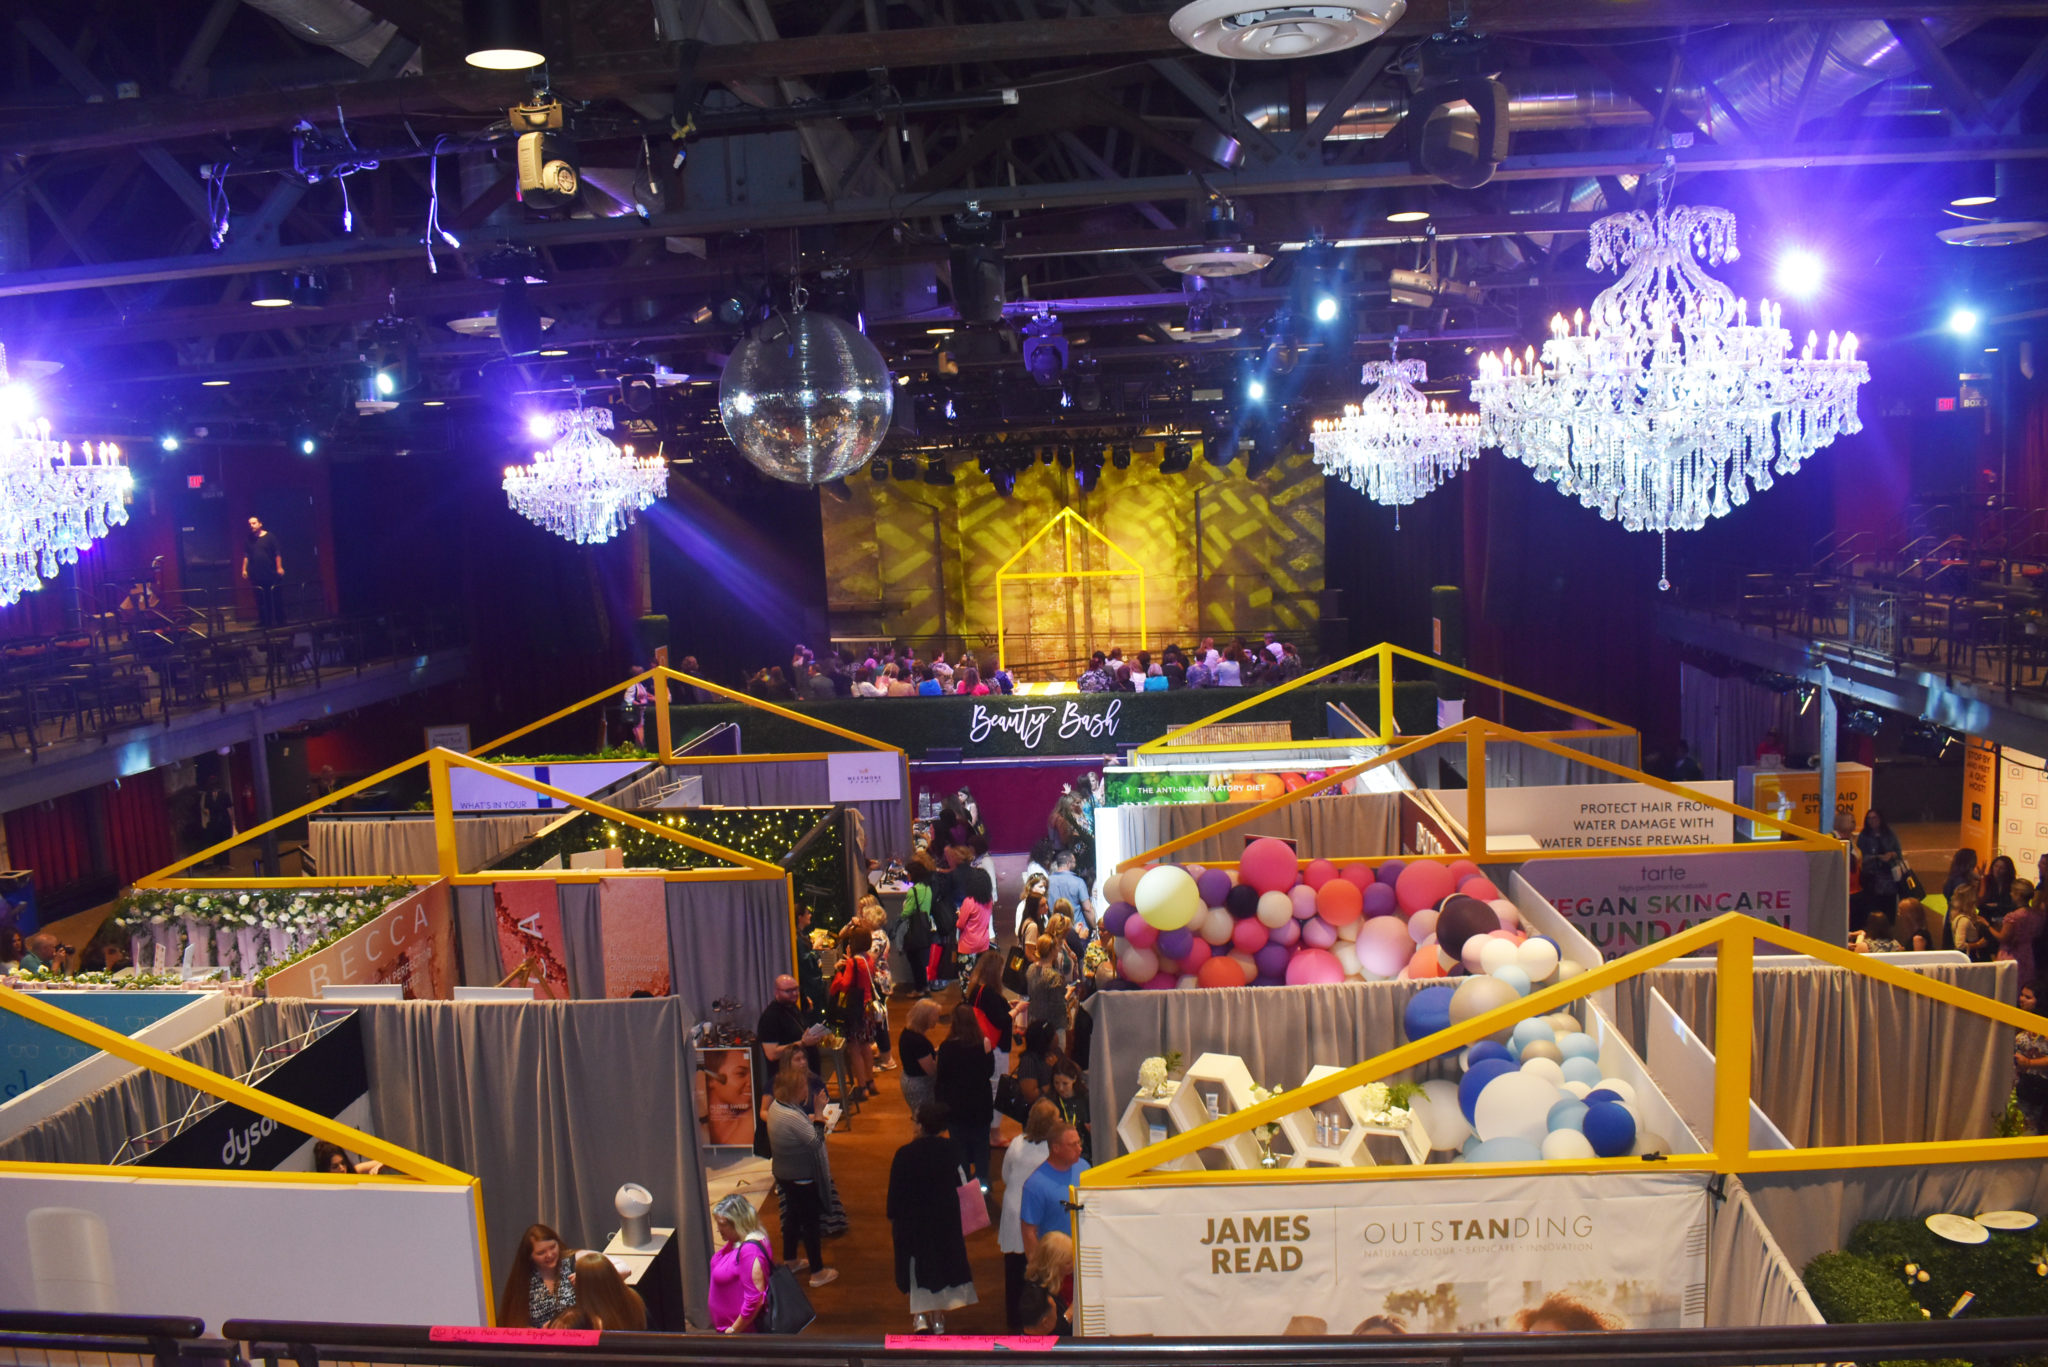 #BeautyBashPhll #LoveQVC Overview of Beauty Bash at the Philadelphia Fillmore.